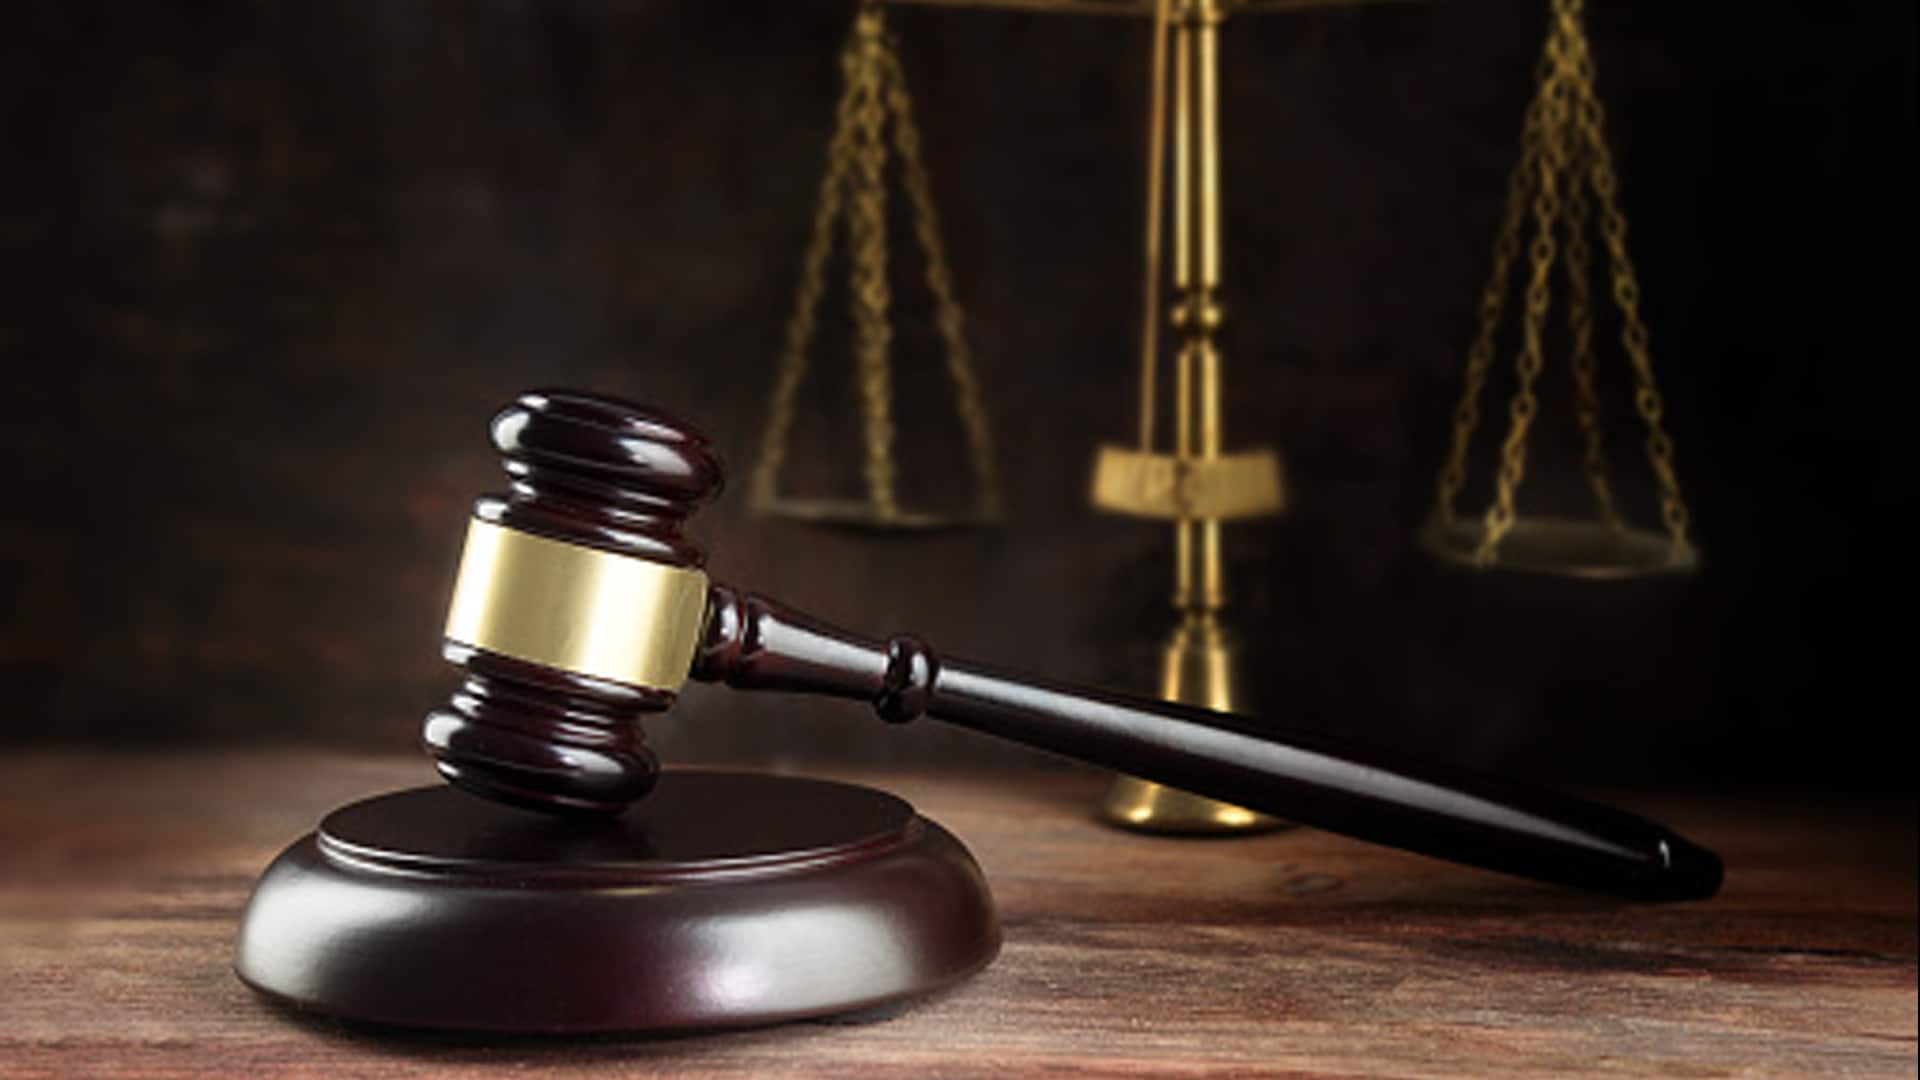 5 people convicted of 1992 Securities scam